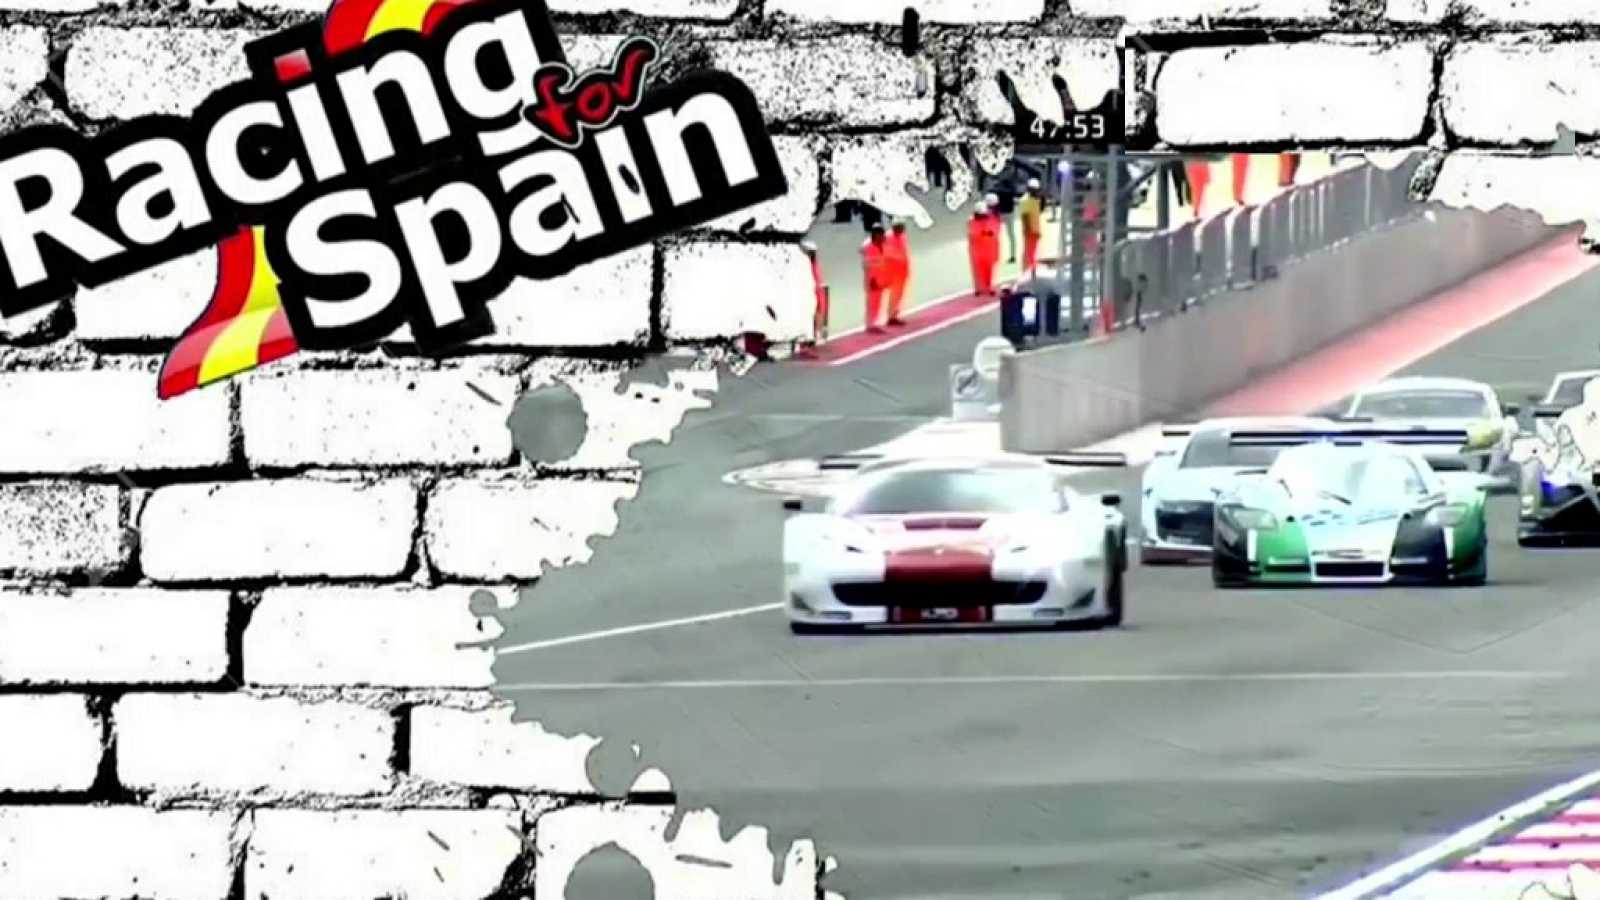 Racing for Spain - 2019 - Programa 6 - ver ahora